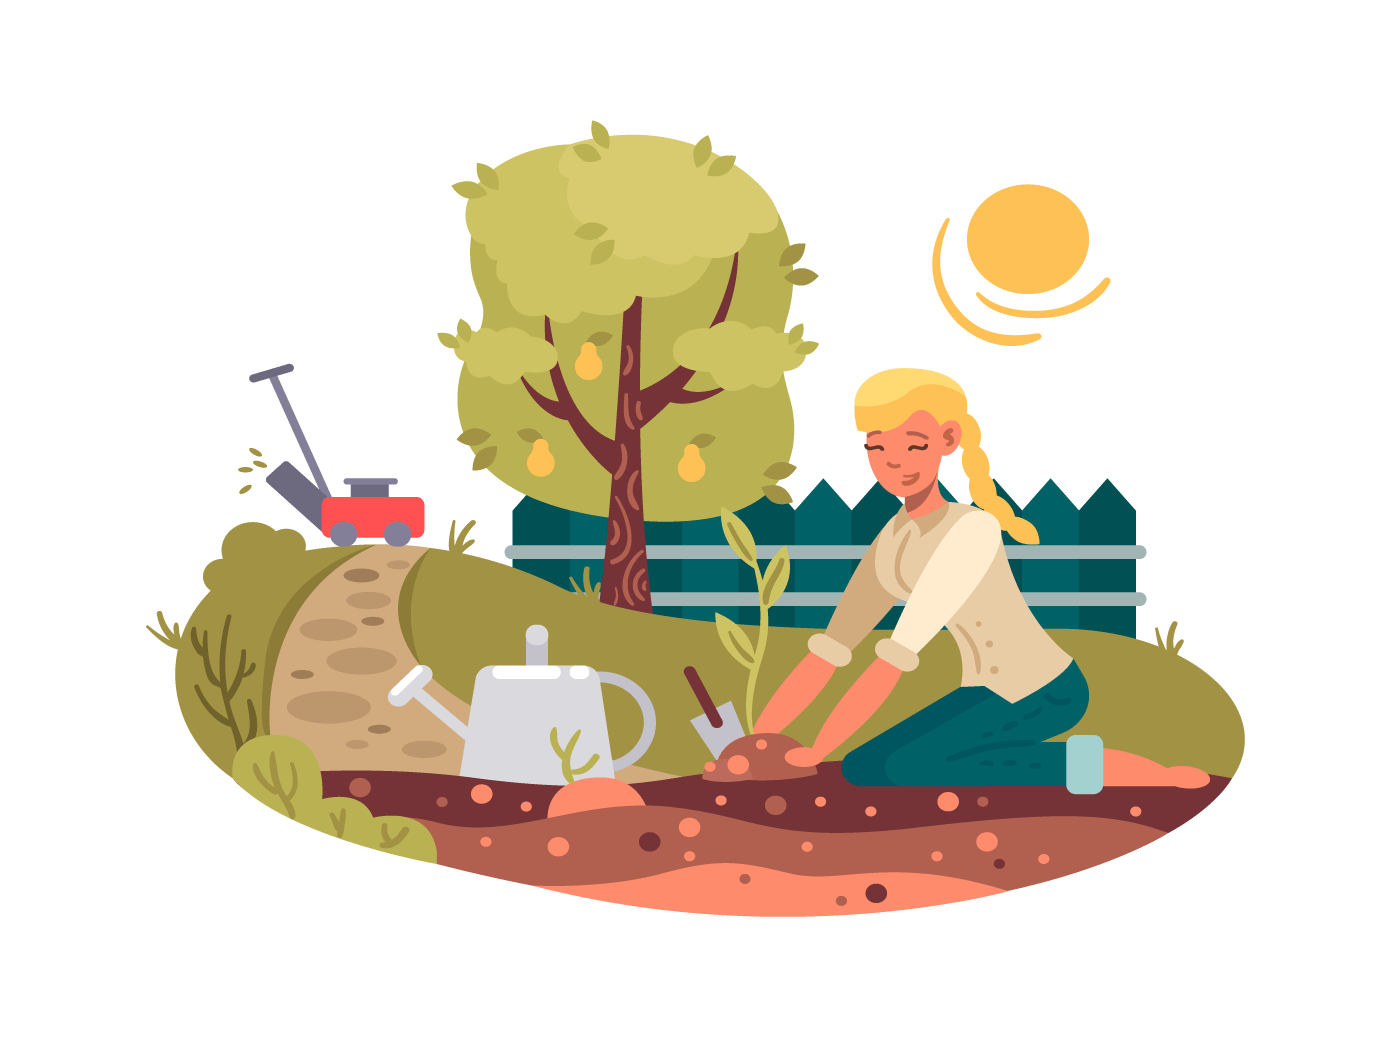 Young girl planting seedling illustration